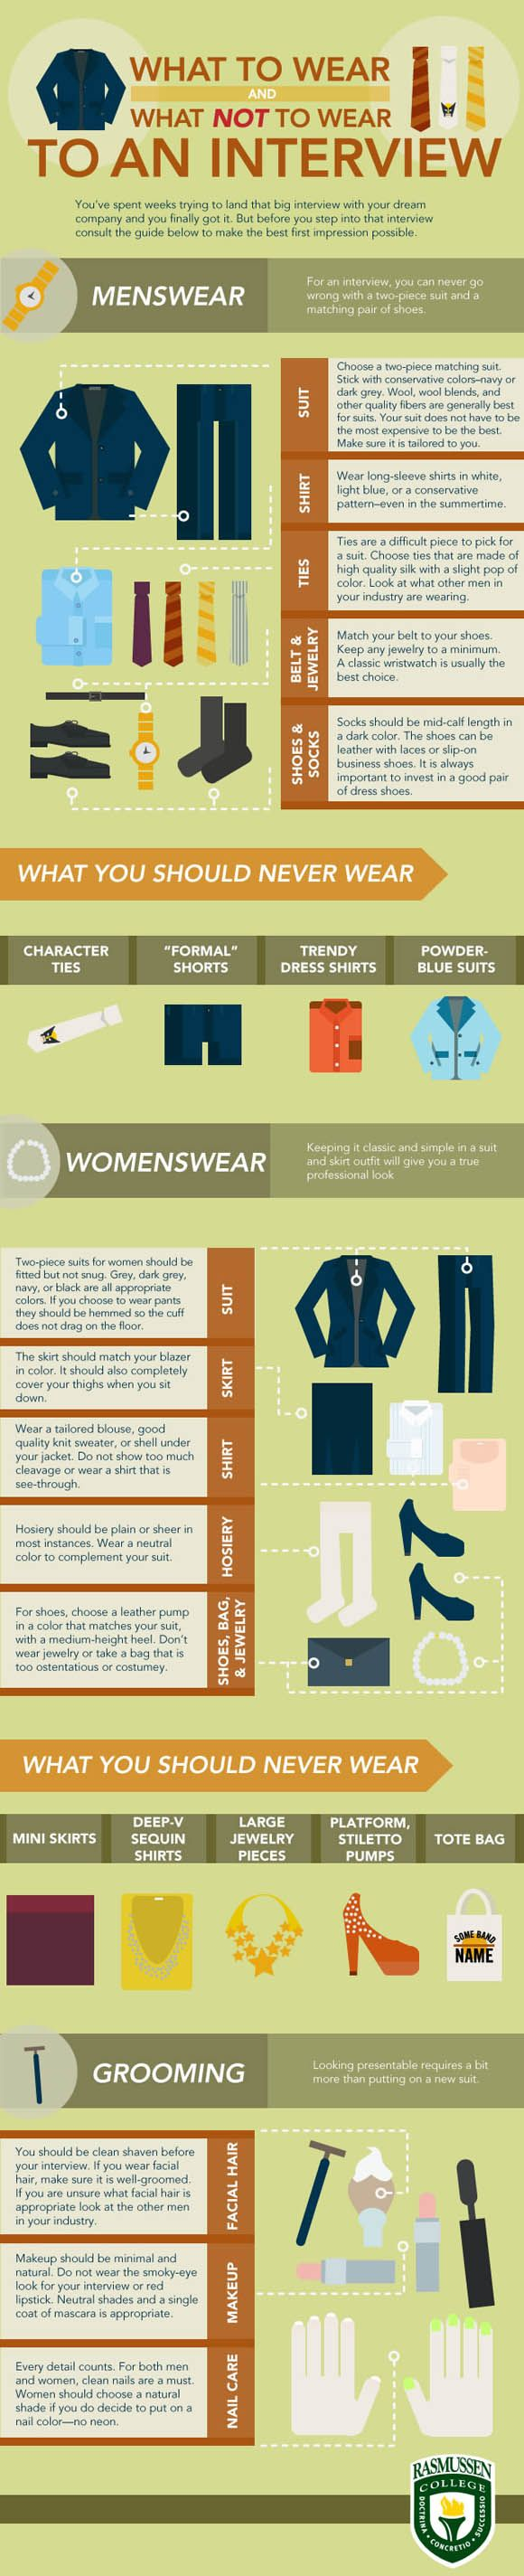 Wondering what to wear for your big interview? Check out this infographic for some helpful hints to help you pick your outfit.